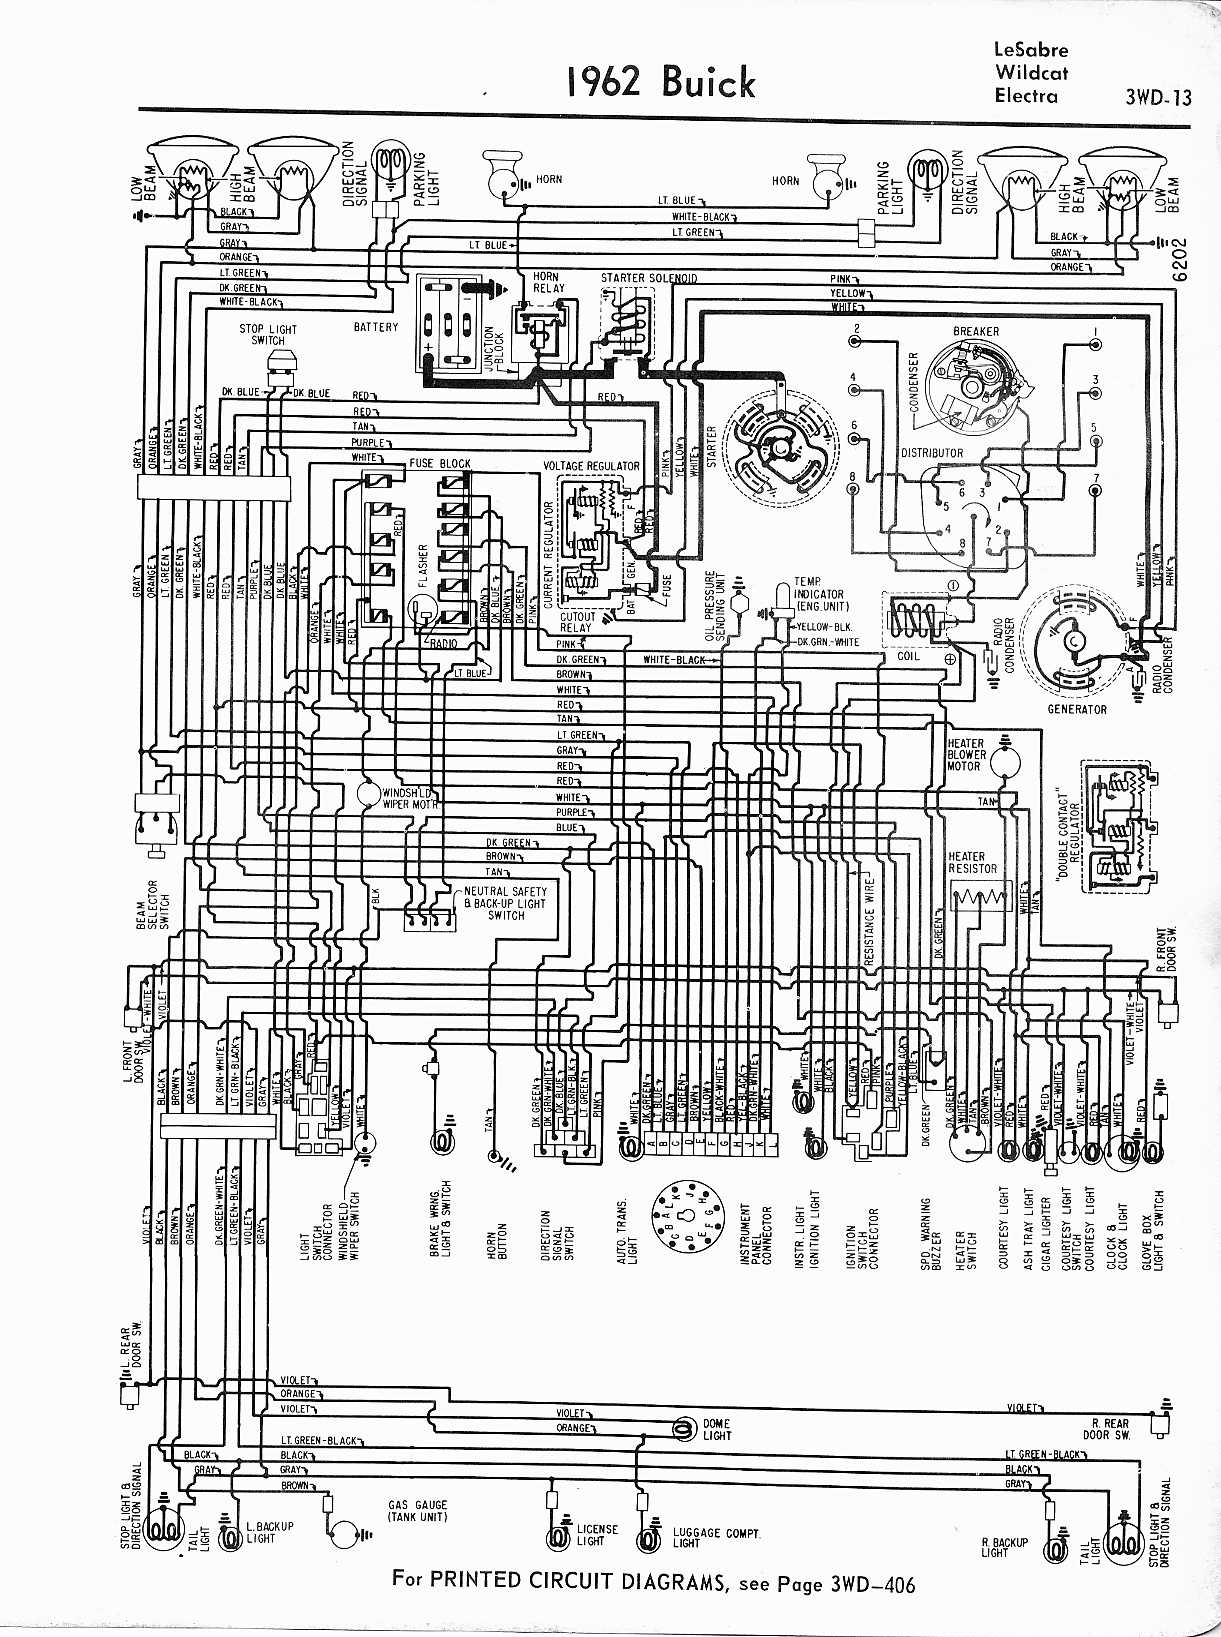 buick riviera wiring diagram all wiring diagram buick wiring diagrams 1957 1965 1999 buick riviera wiring diagram 1962 lesabre wildcat